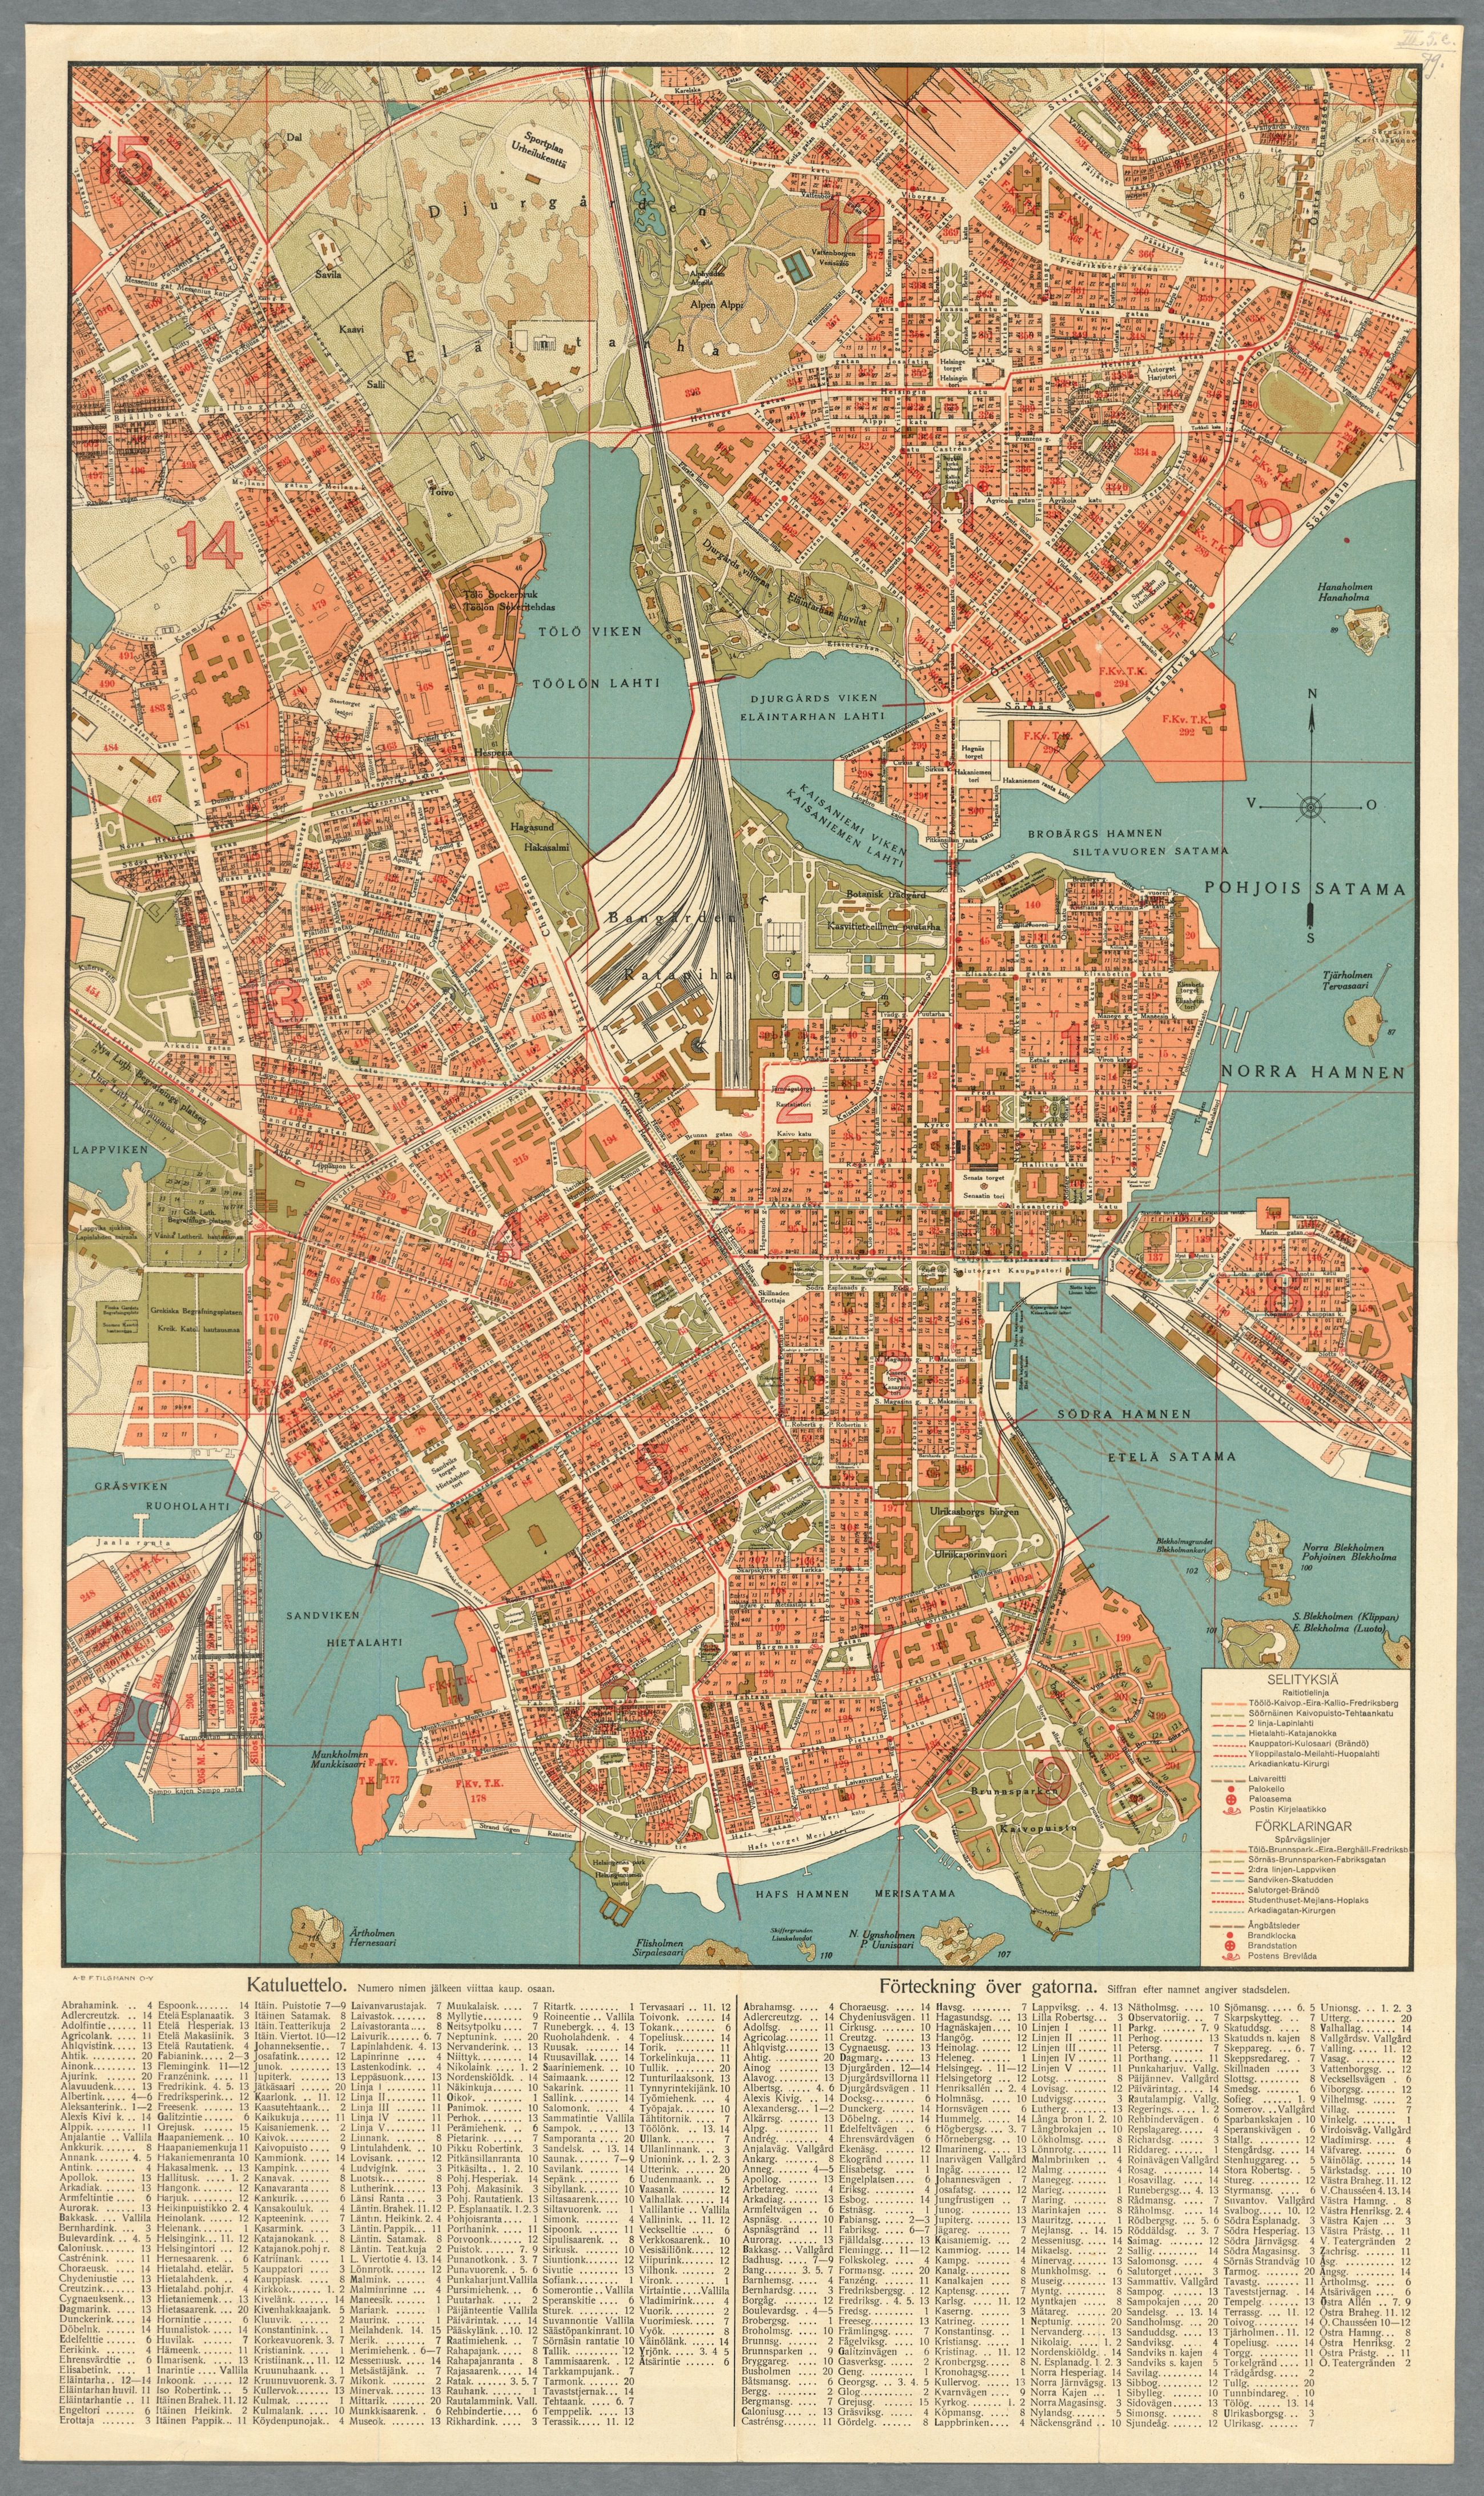 Map Of Helsinki 1924 With Images City Maps Map Map Design